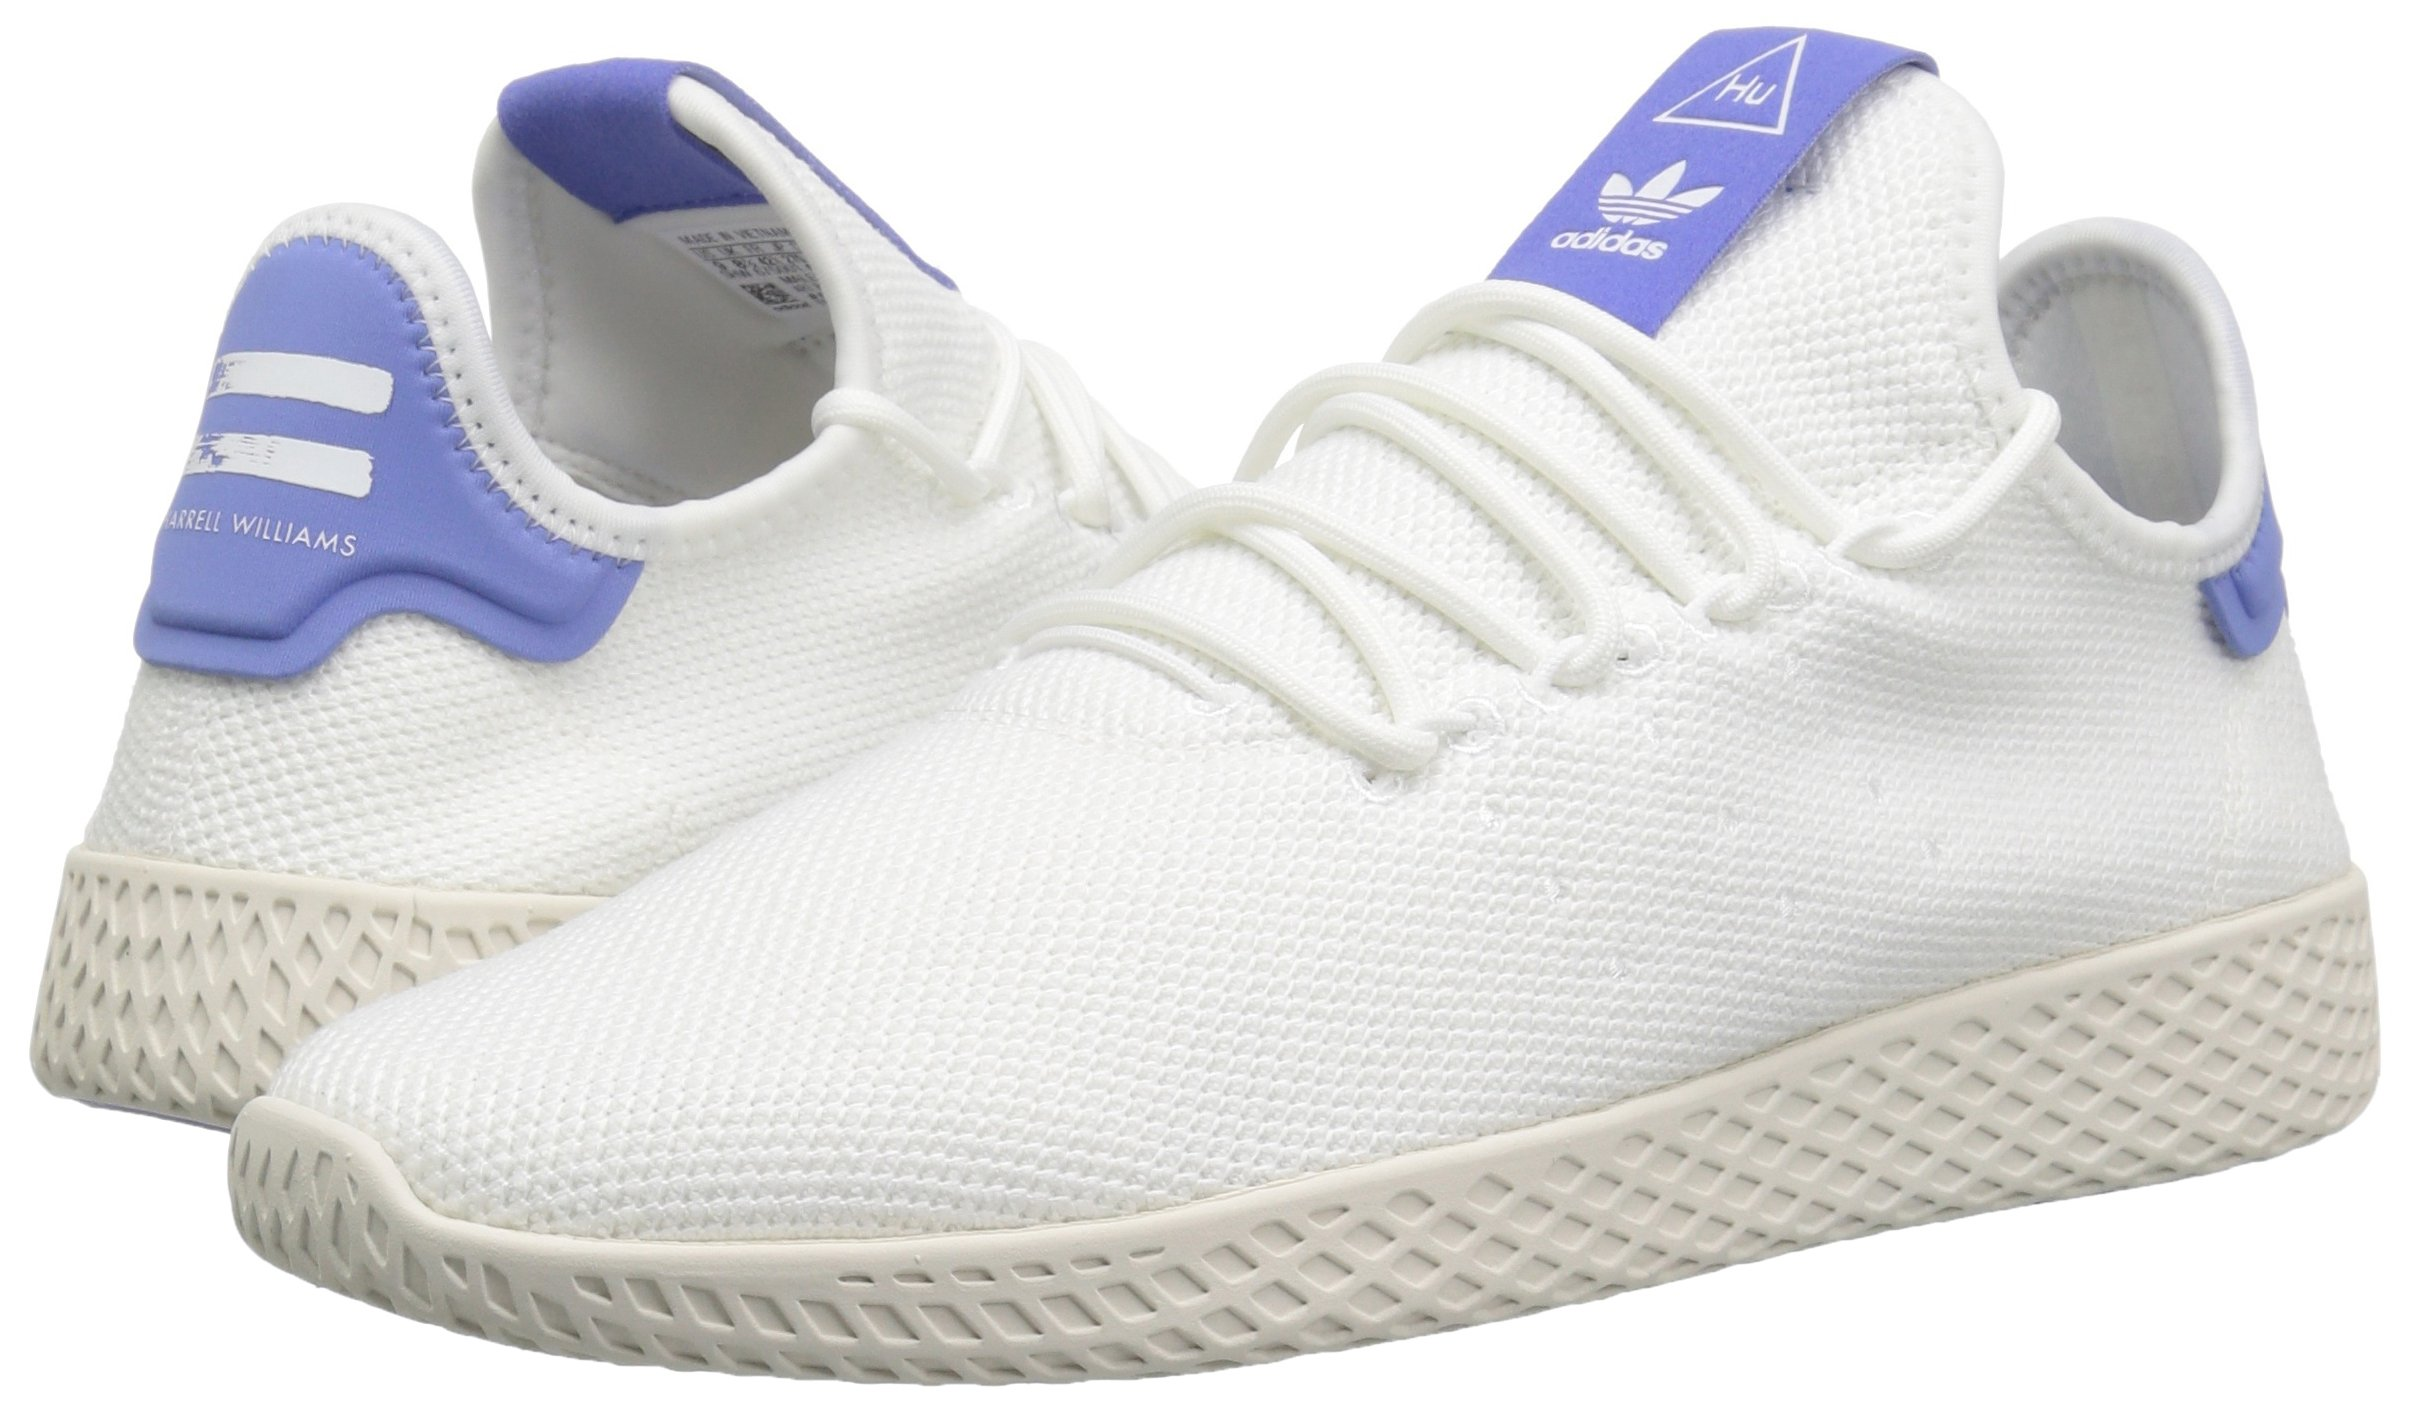 adidas Originals Men's Pharrell Williams Tennis HU Running Shoe, White/Chalk, 5.5 M US by adidas Originals (Image #5)